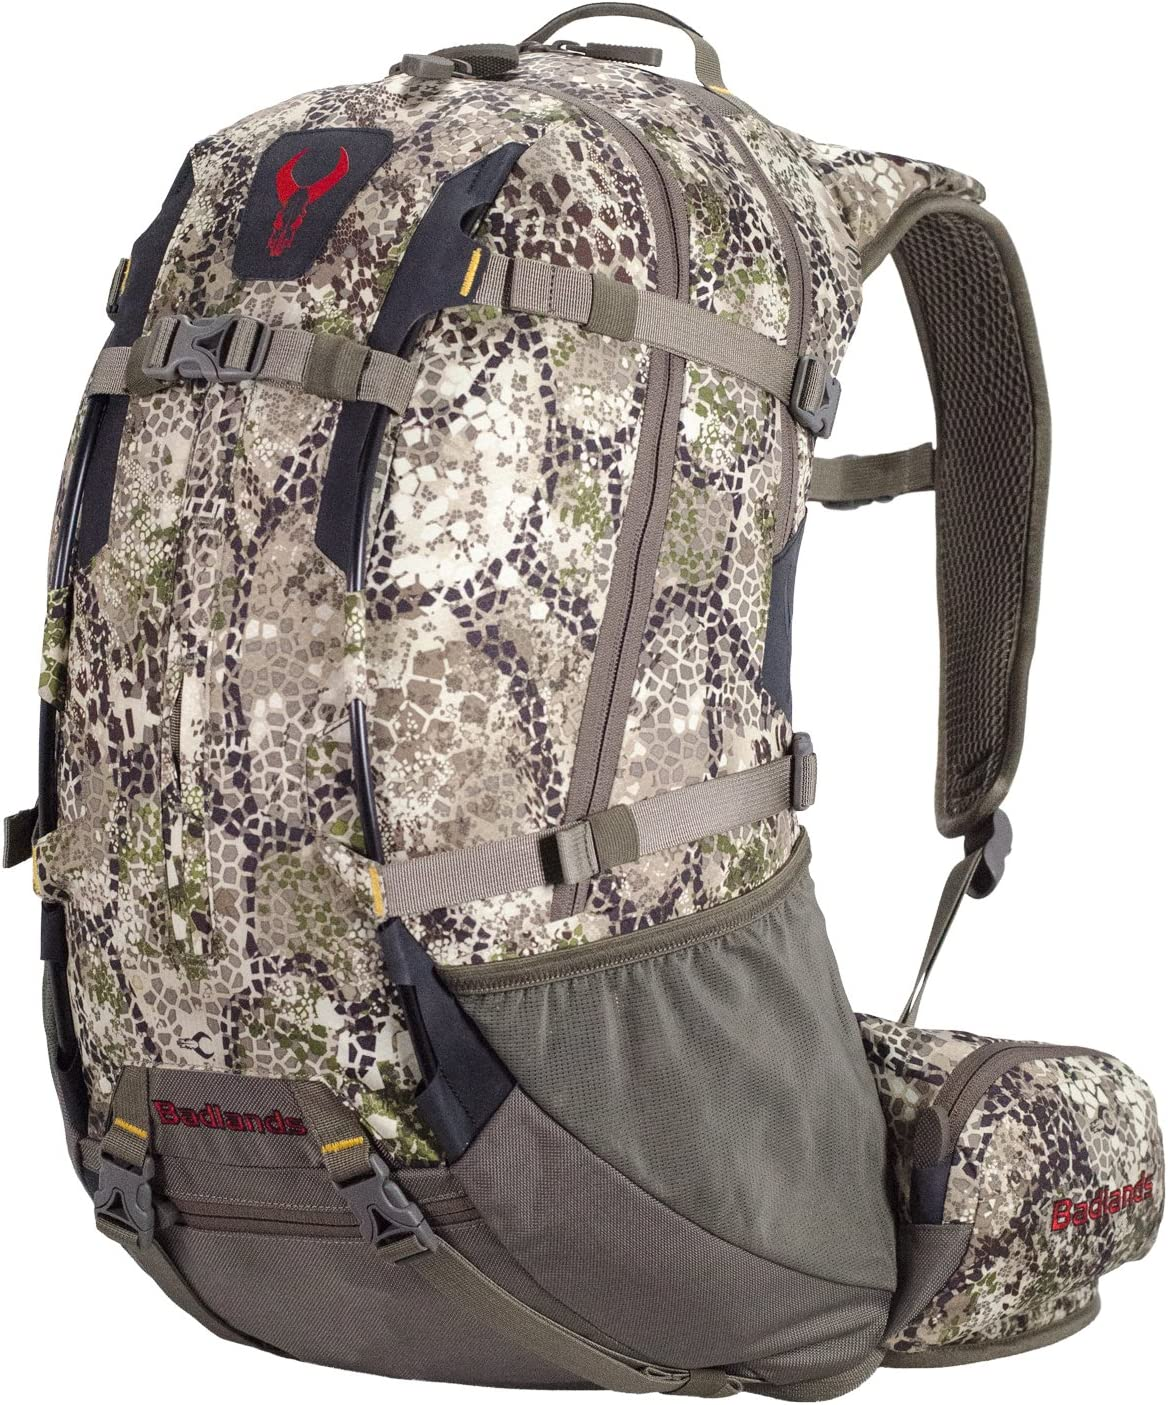 Badlands Hydration Reservoir with Insulated Drink Tube Hunting Camping Backpack